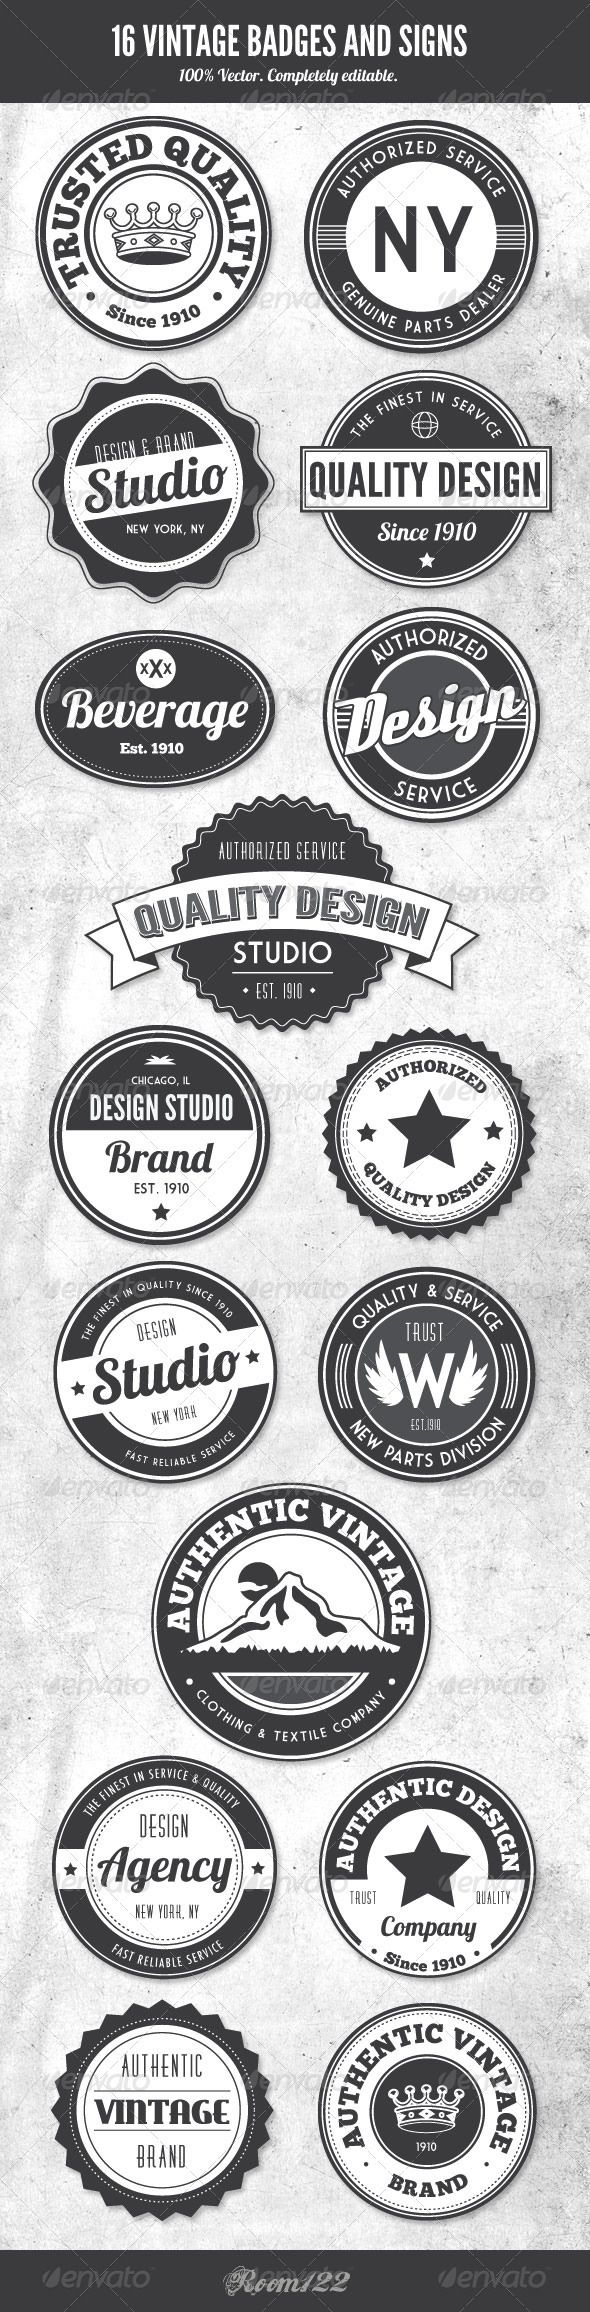 Vintage Style Badges and Logos - GraphicRiver Item for Sale